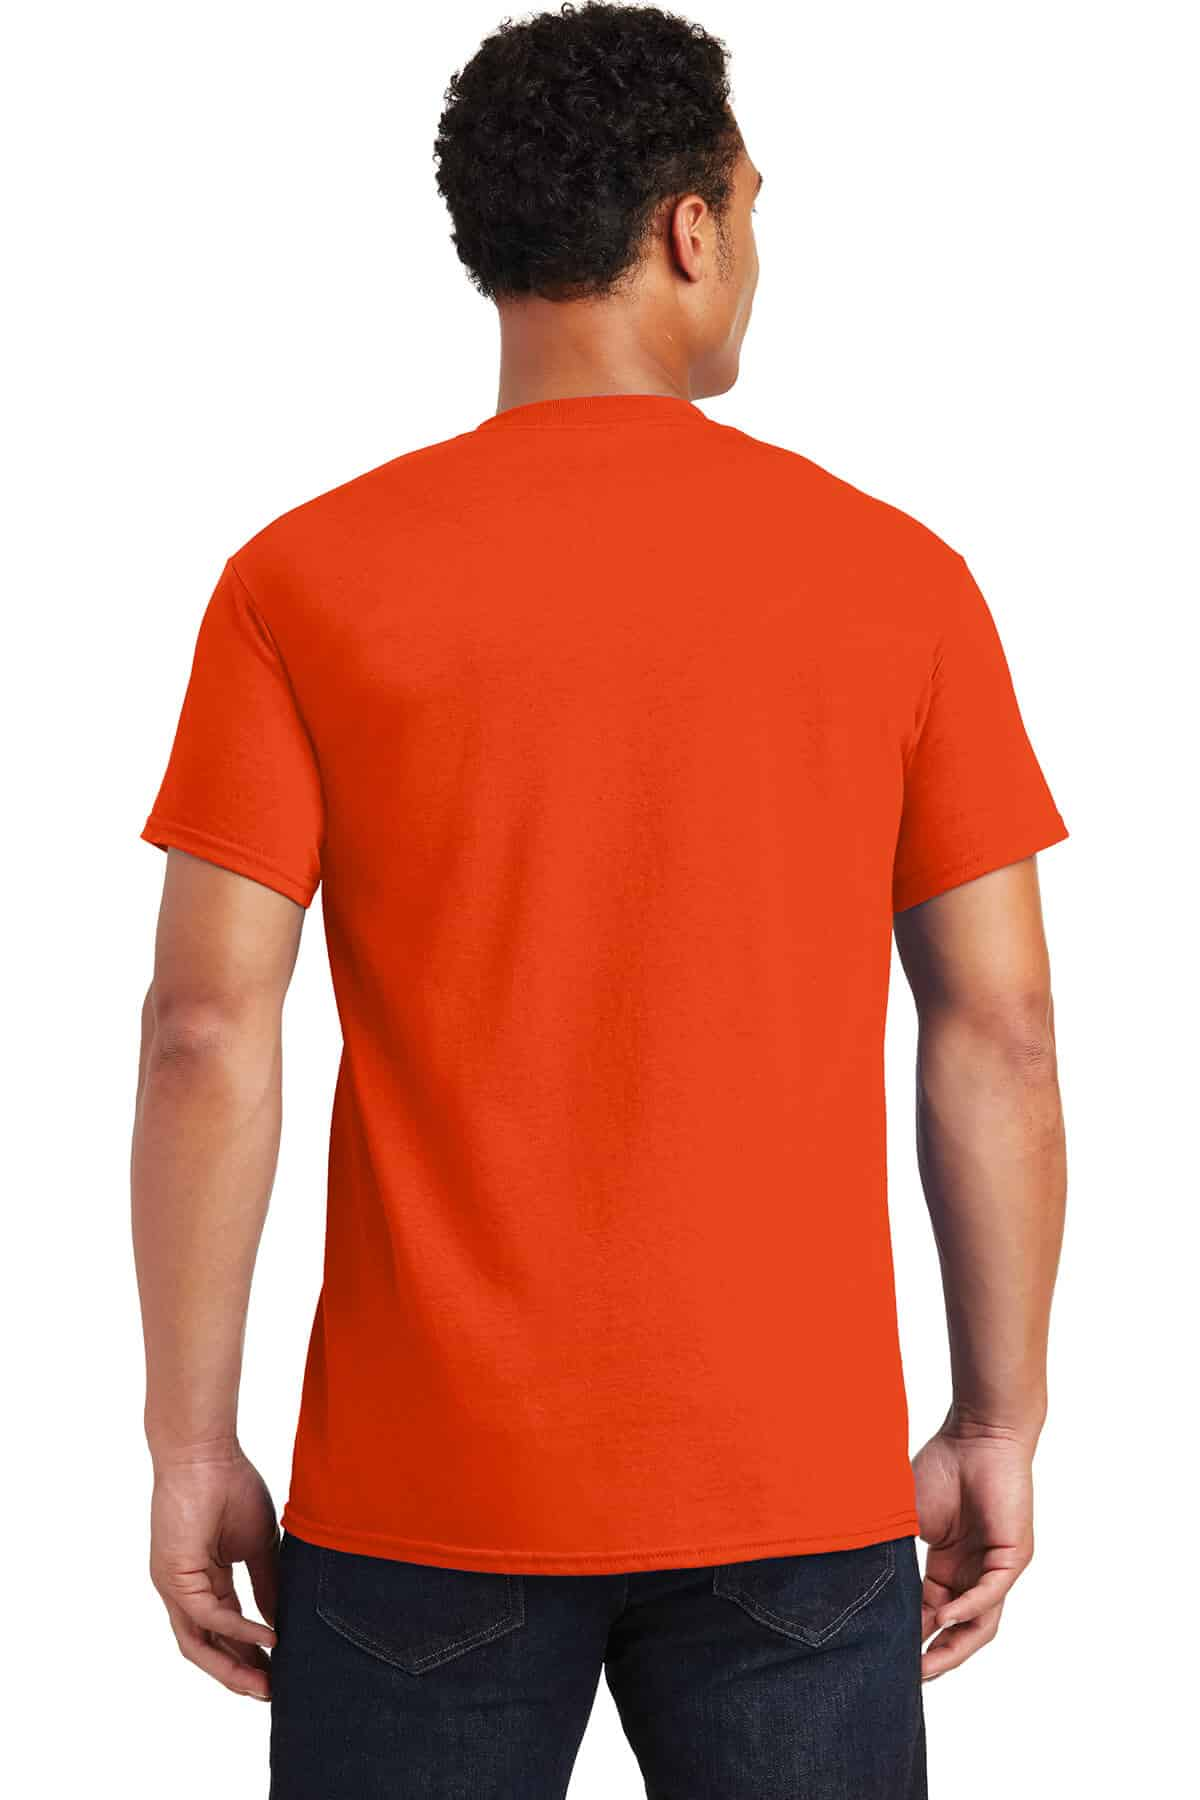 Orange TeeShirt Back